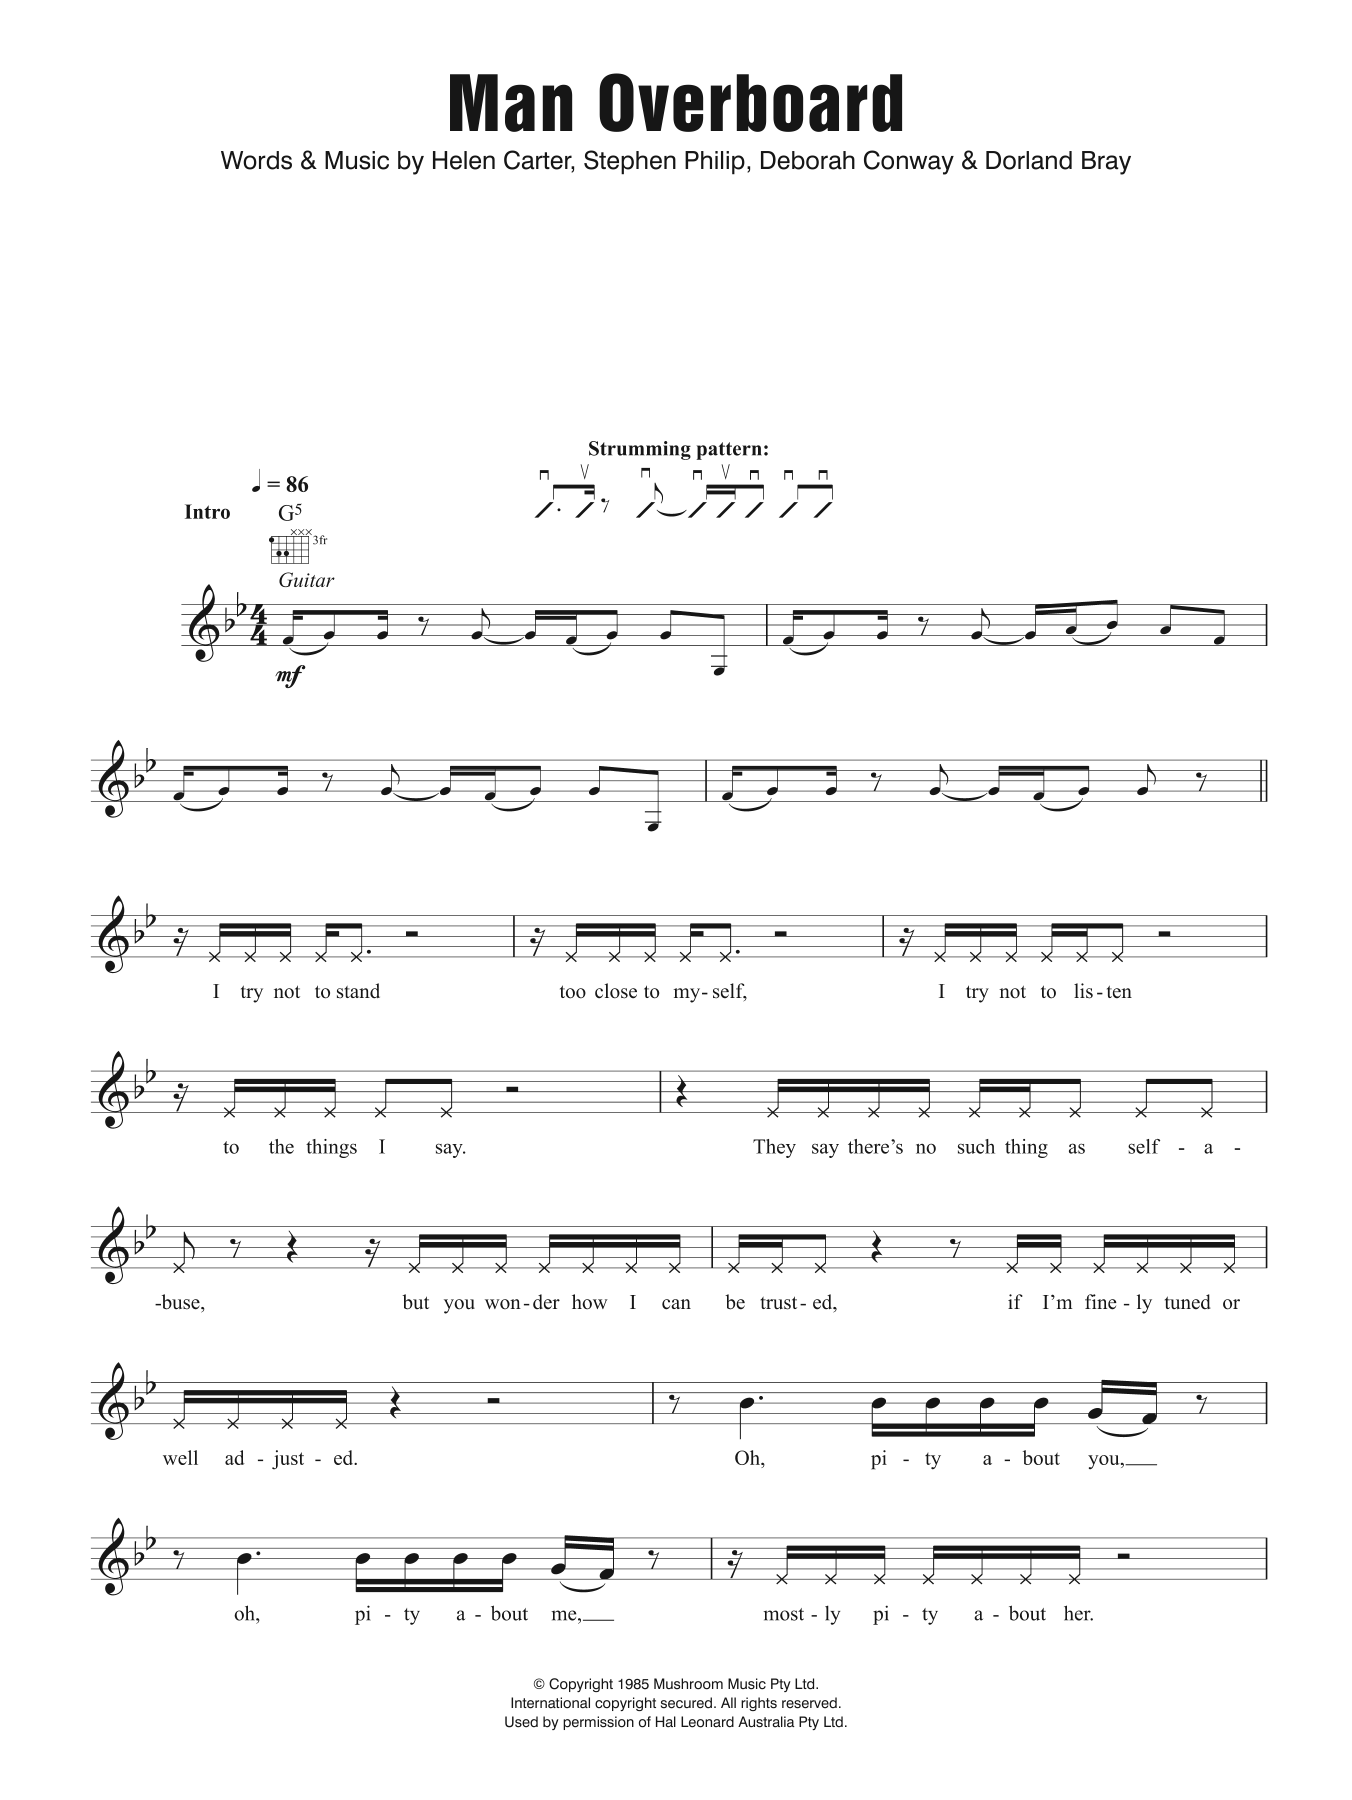 Man Overboard Do Re Mi Melody Line Lyrics Chords